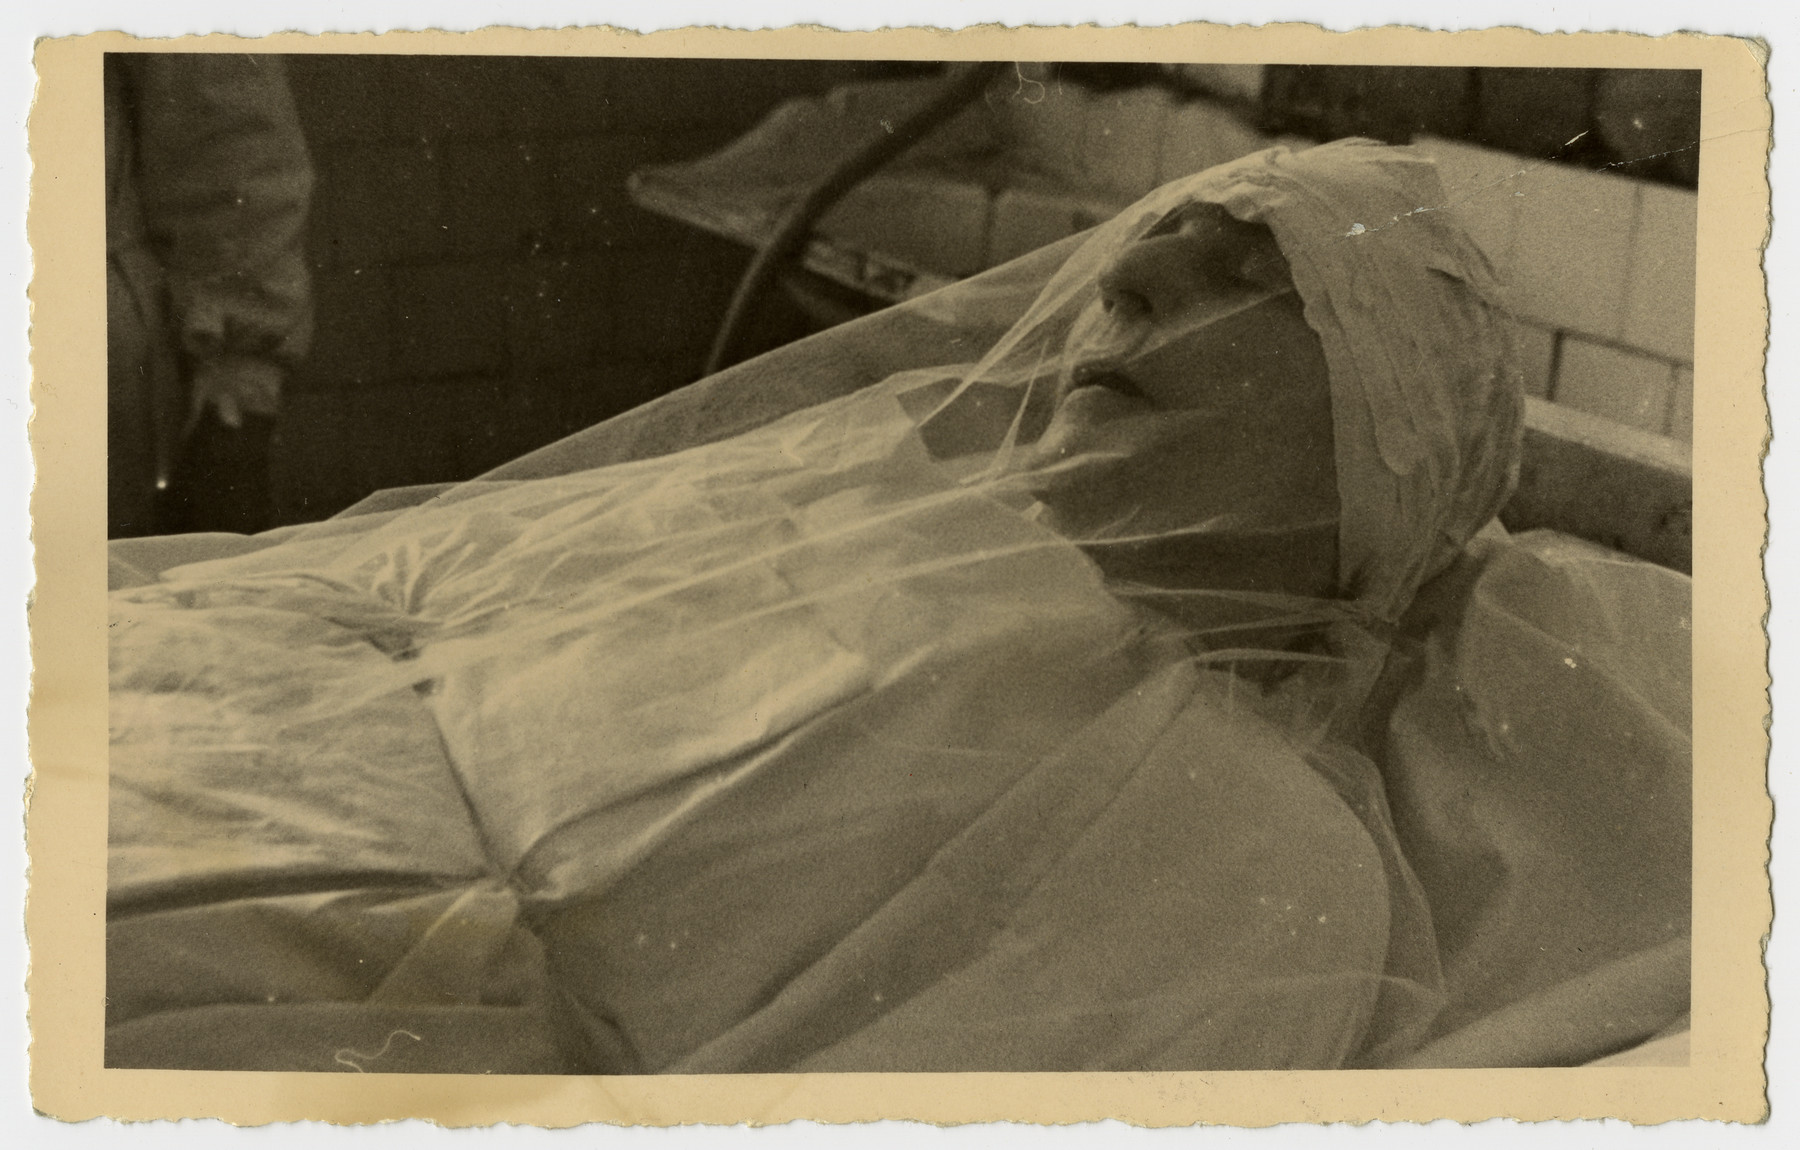 Freida Albin lies in her shrouds after the completion of her tahara (ritual purification).